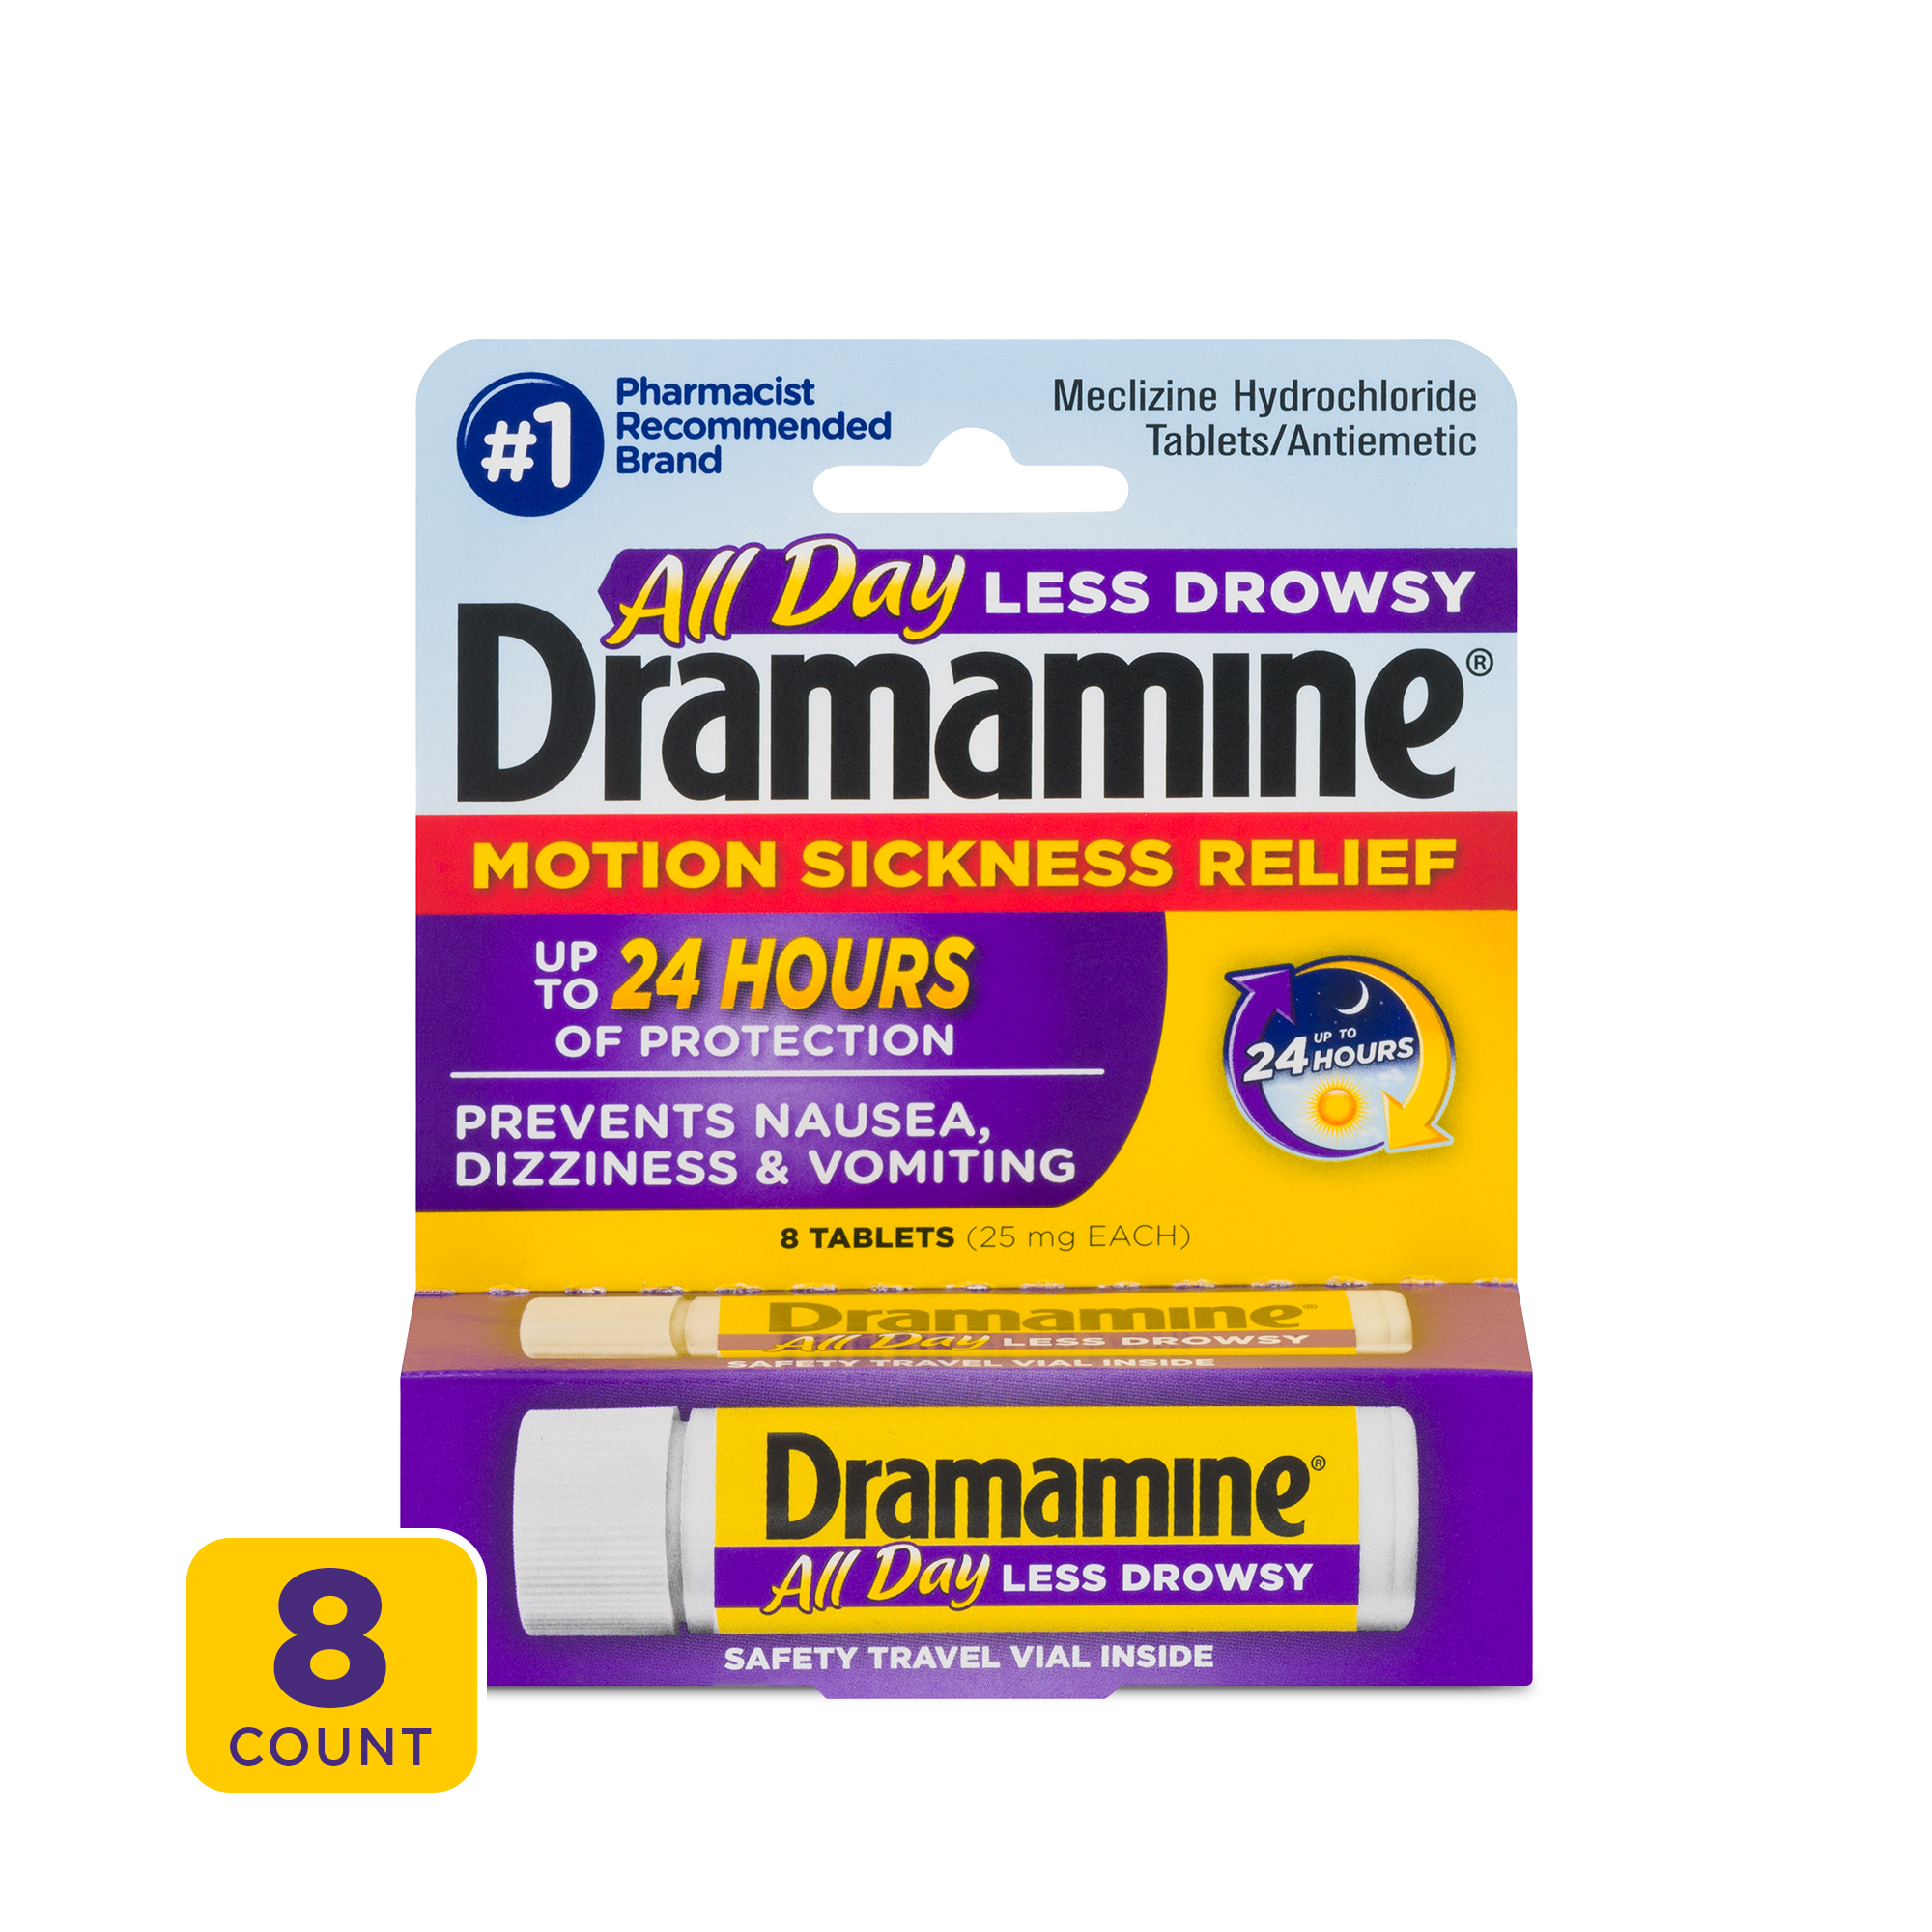 Dramamine All Day Less Drowsy Motion Sickness Relief 8 ...